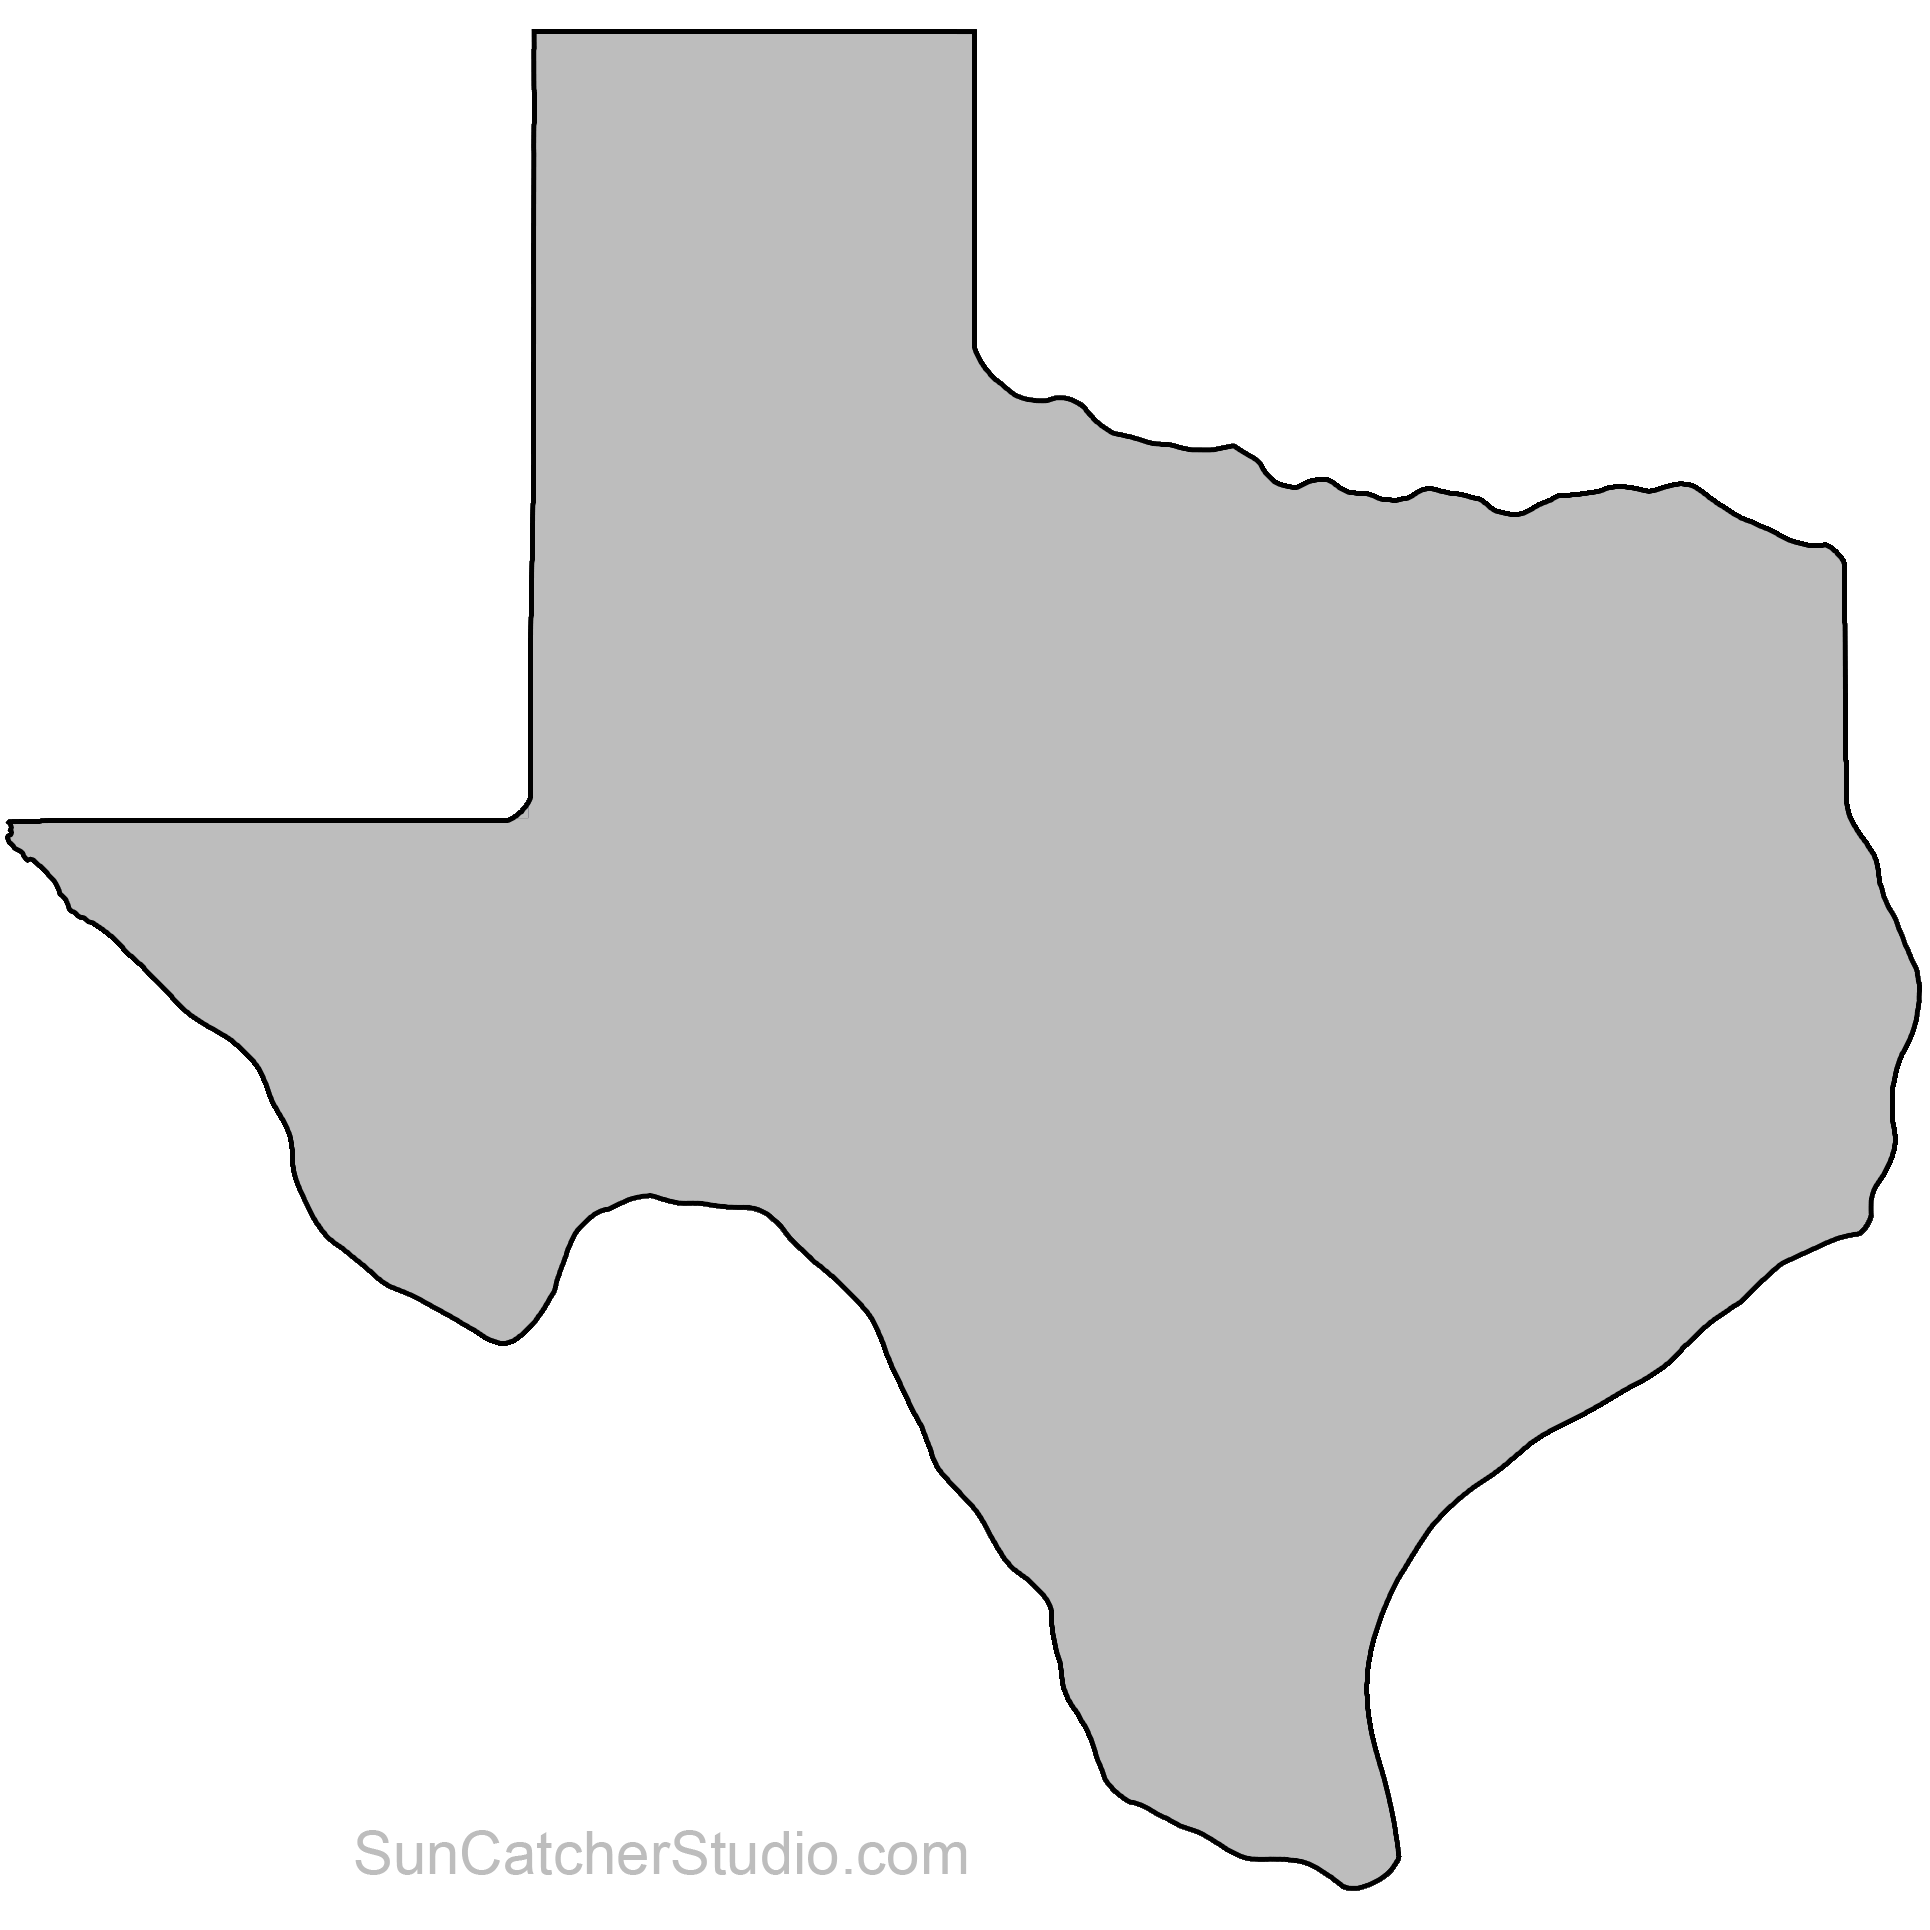 graphic about Texas Outline Printable named Pin upon Texas